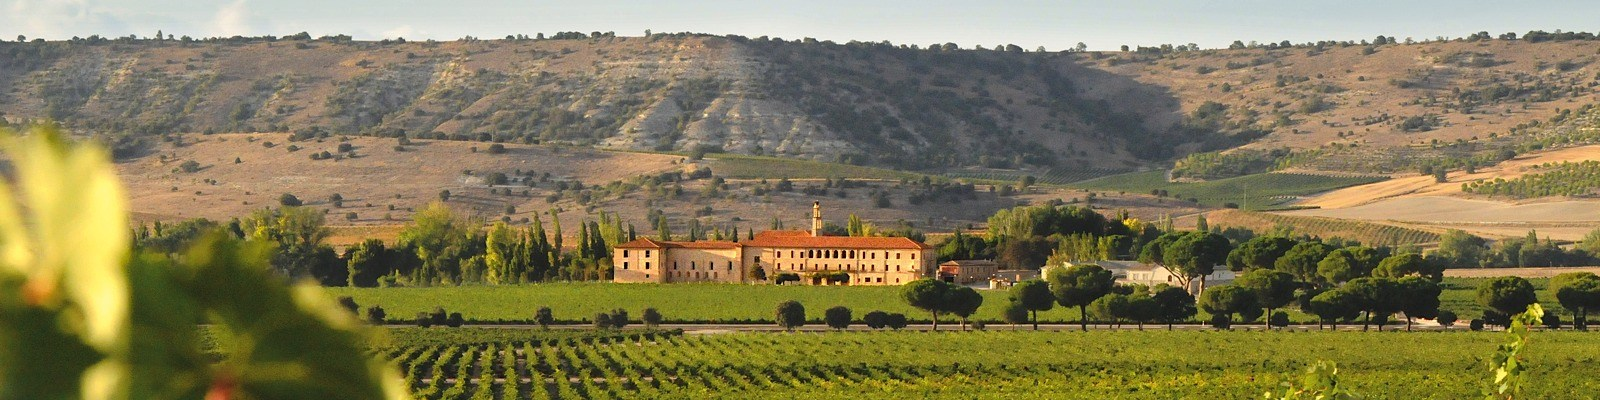 Abadia_Retuerta_Vineyards